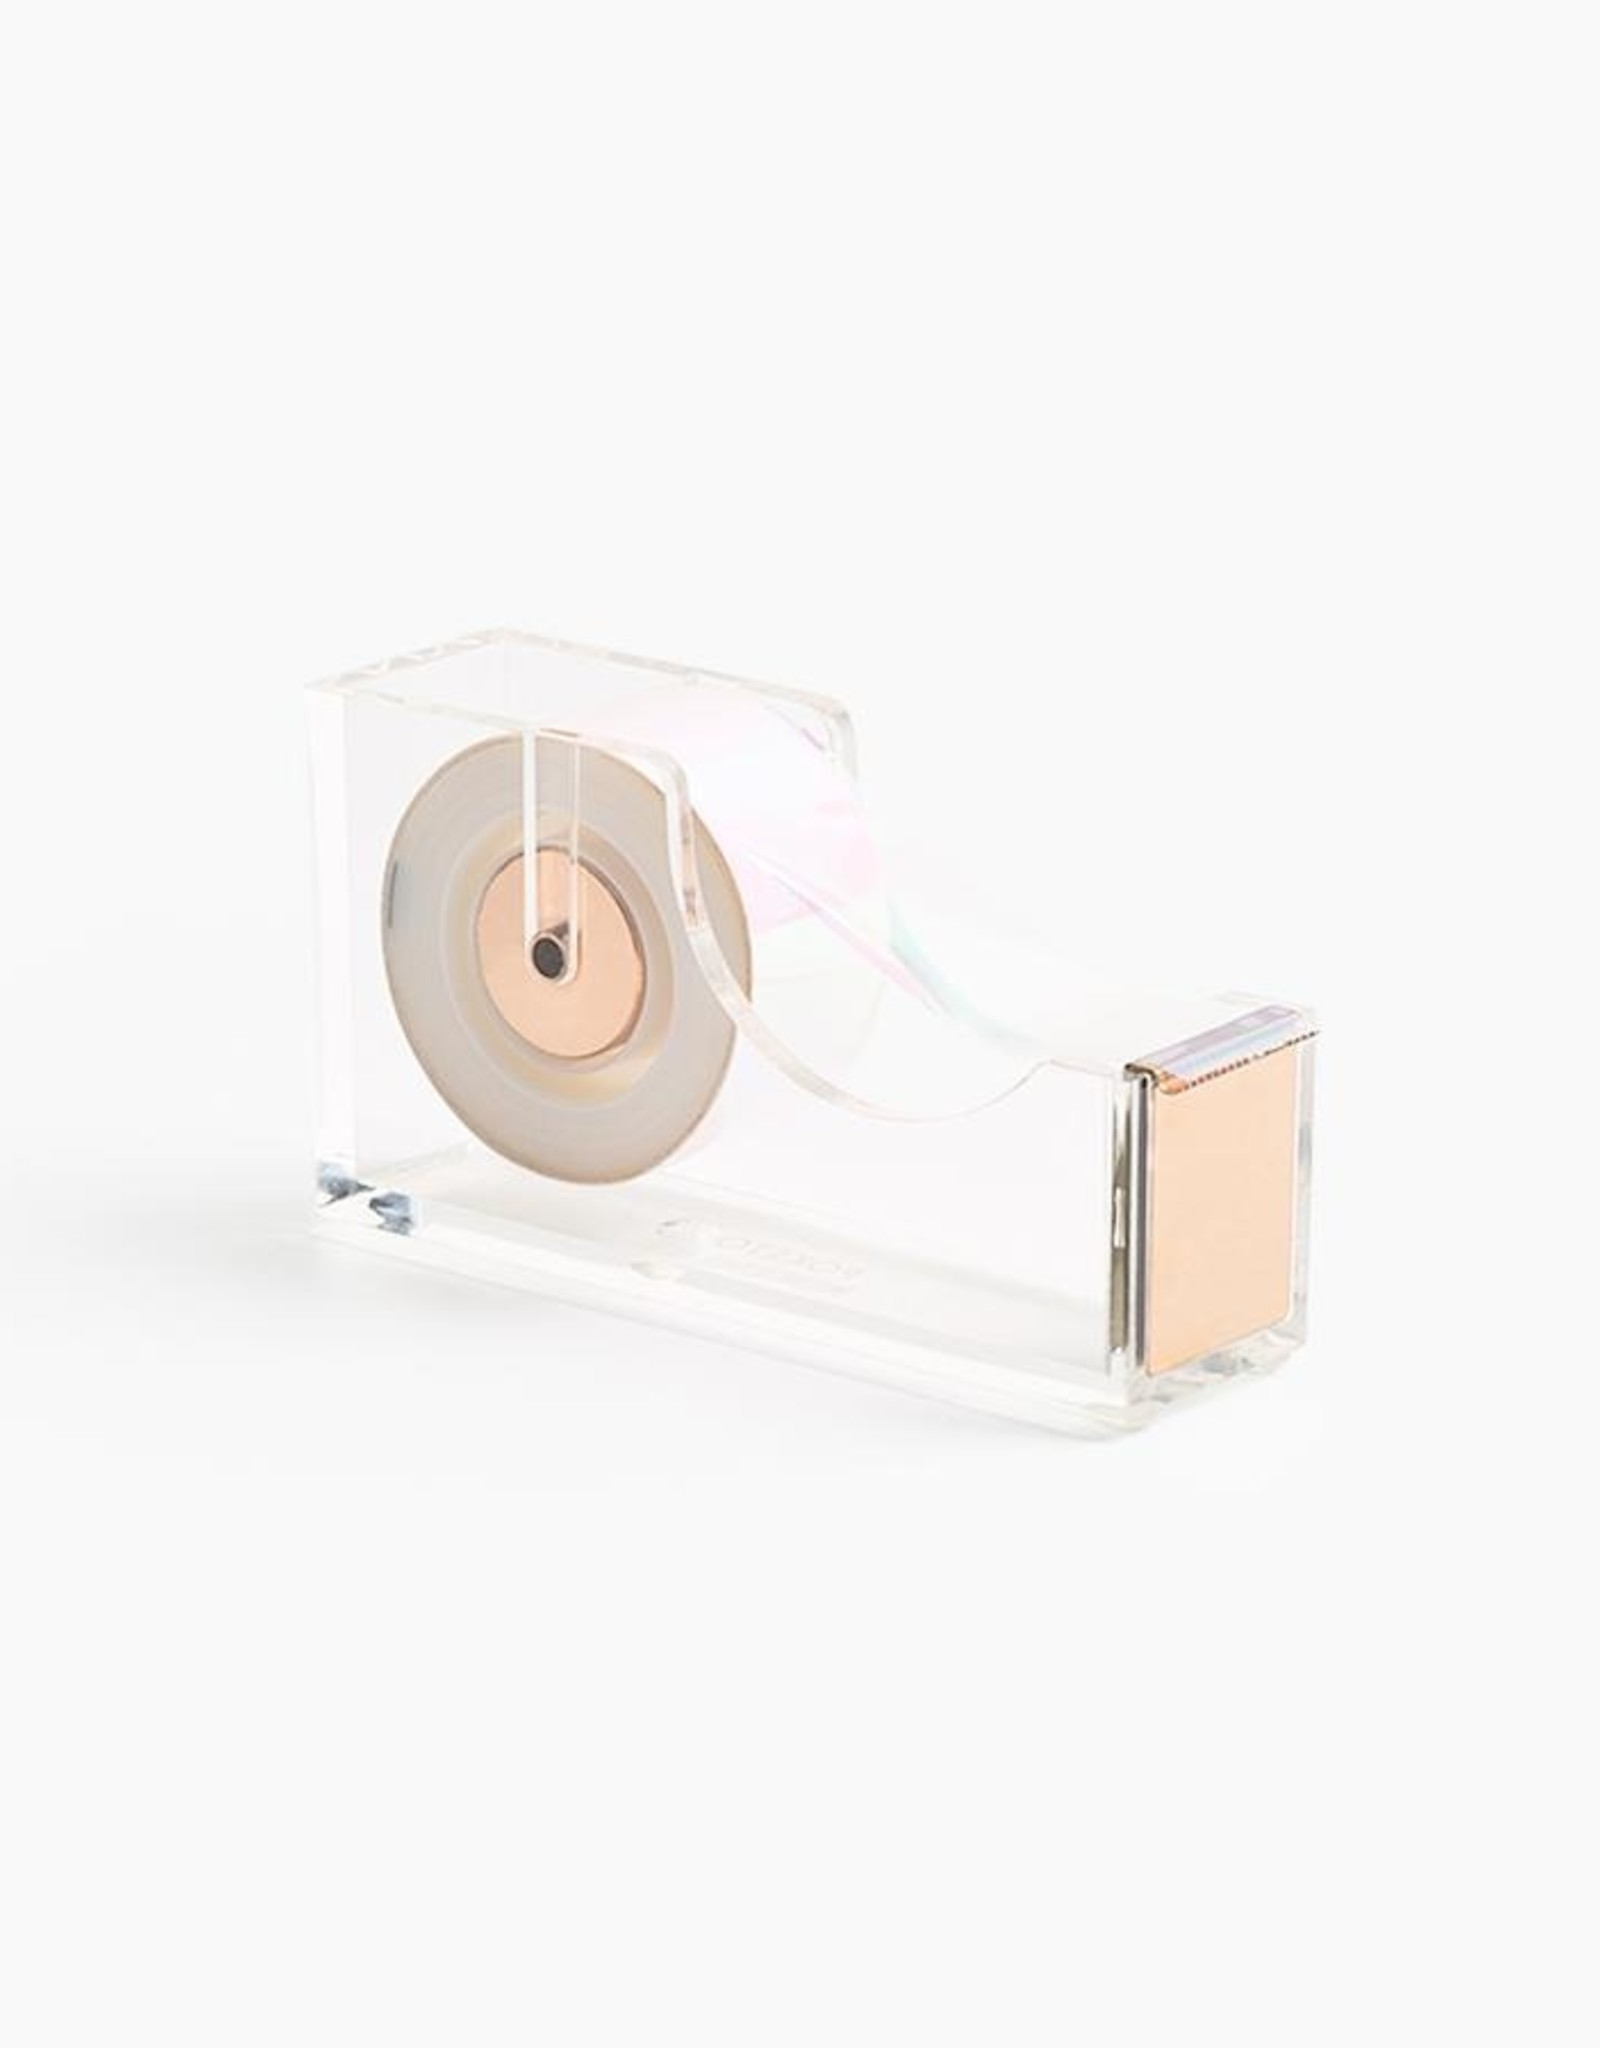 Poketo Poketo Lucite Tape Dispenser